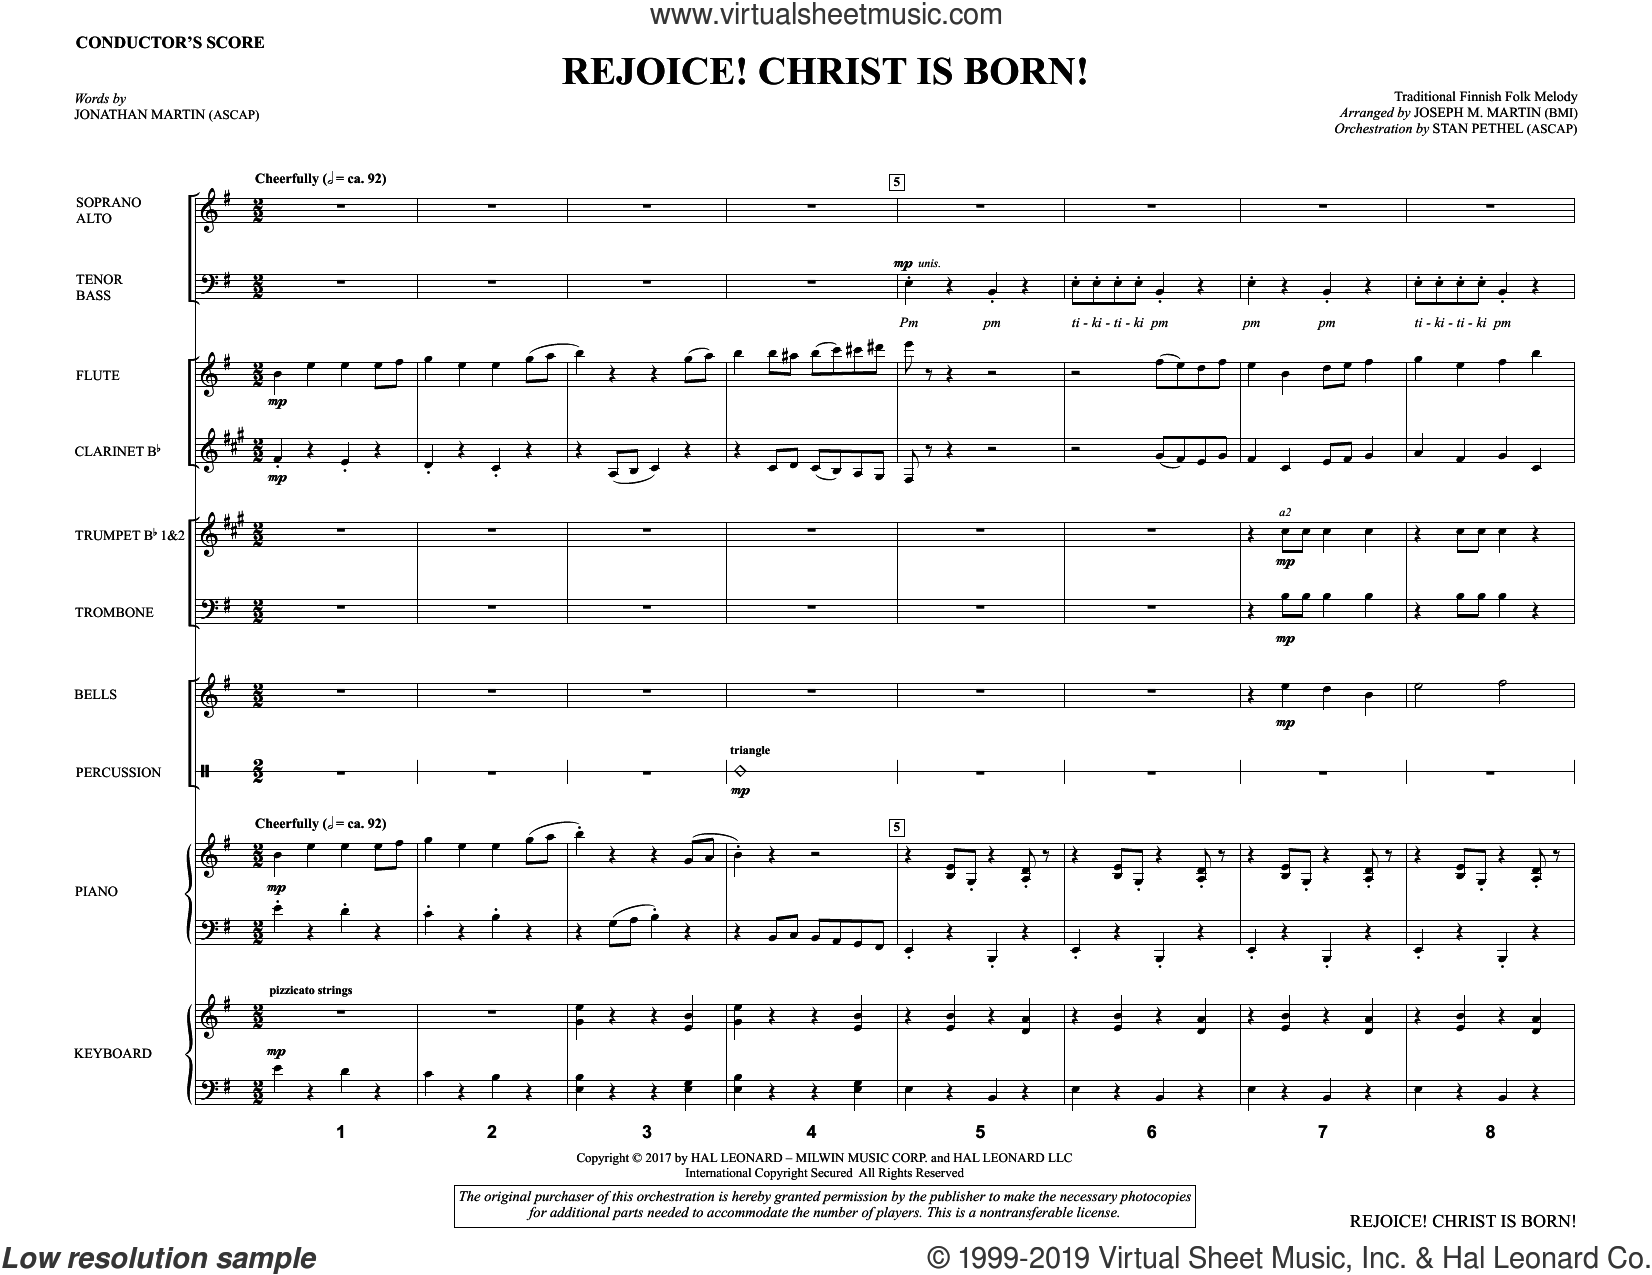 Rejoice! Christ Is Born! (COMPLETE) sheet music for orchestra/band by Joseph M. Martin, Jonathan Martin and Traditional Finnish Folk Melod, intermediate skill level